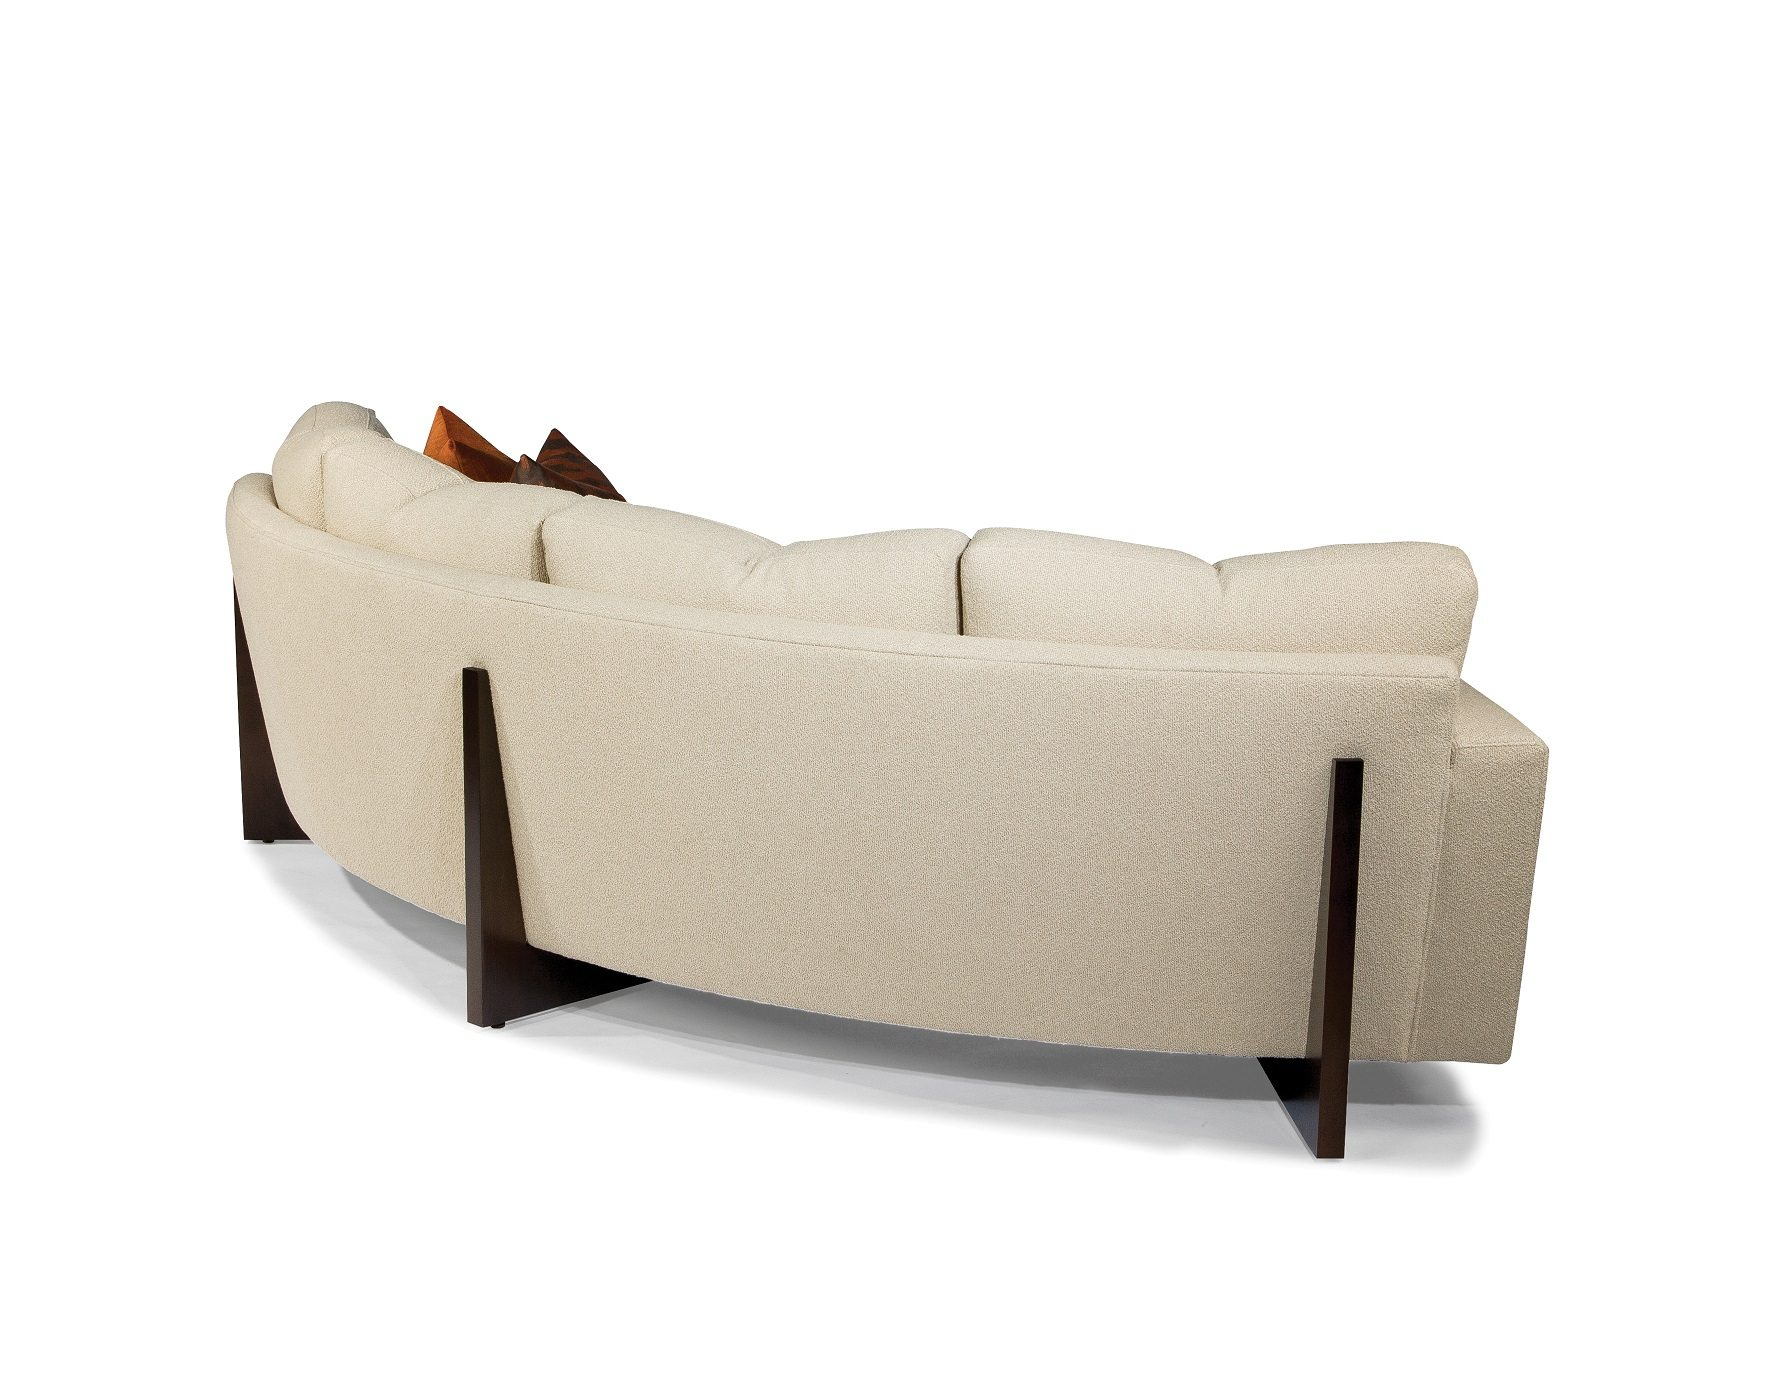 clip-sectional-back-view